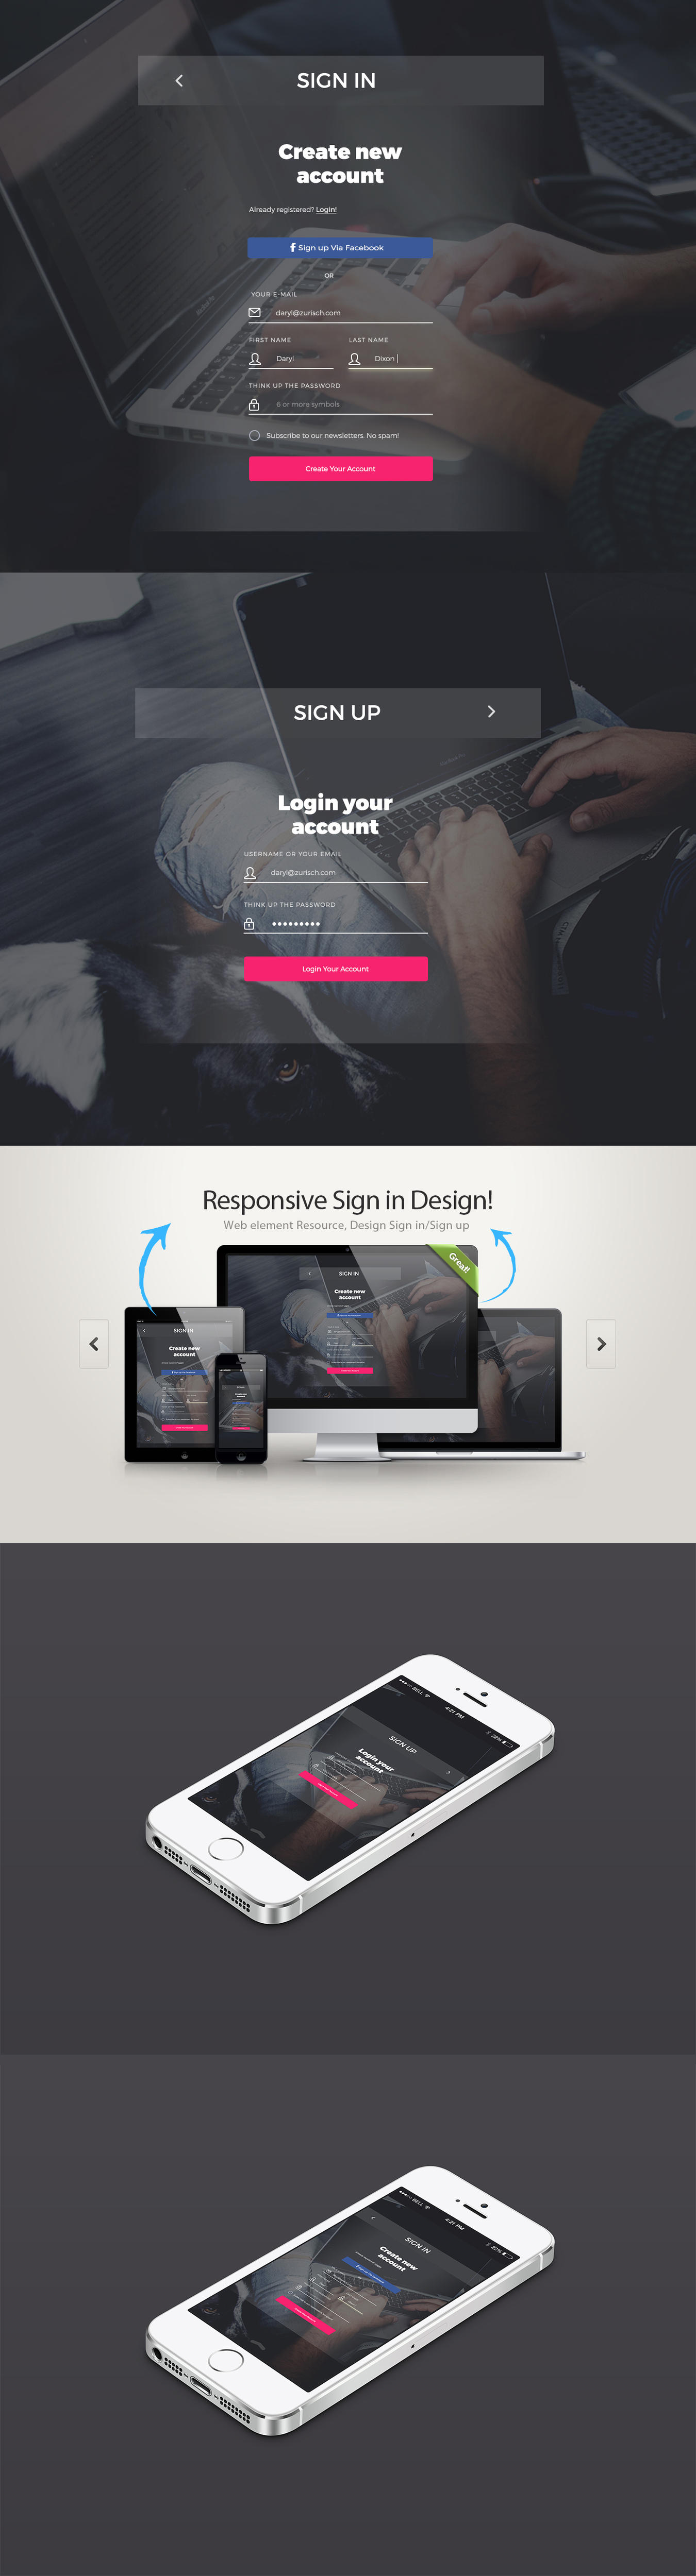 sign-signup design